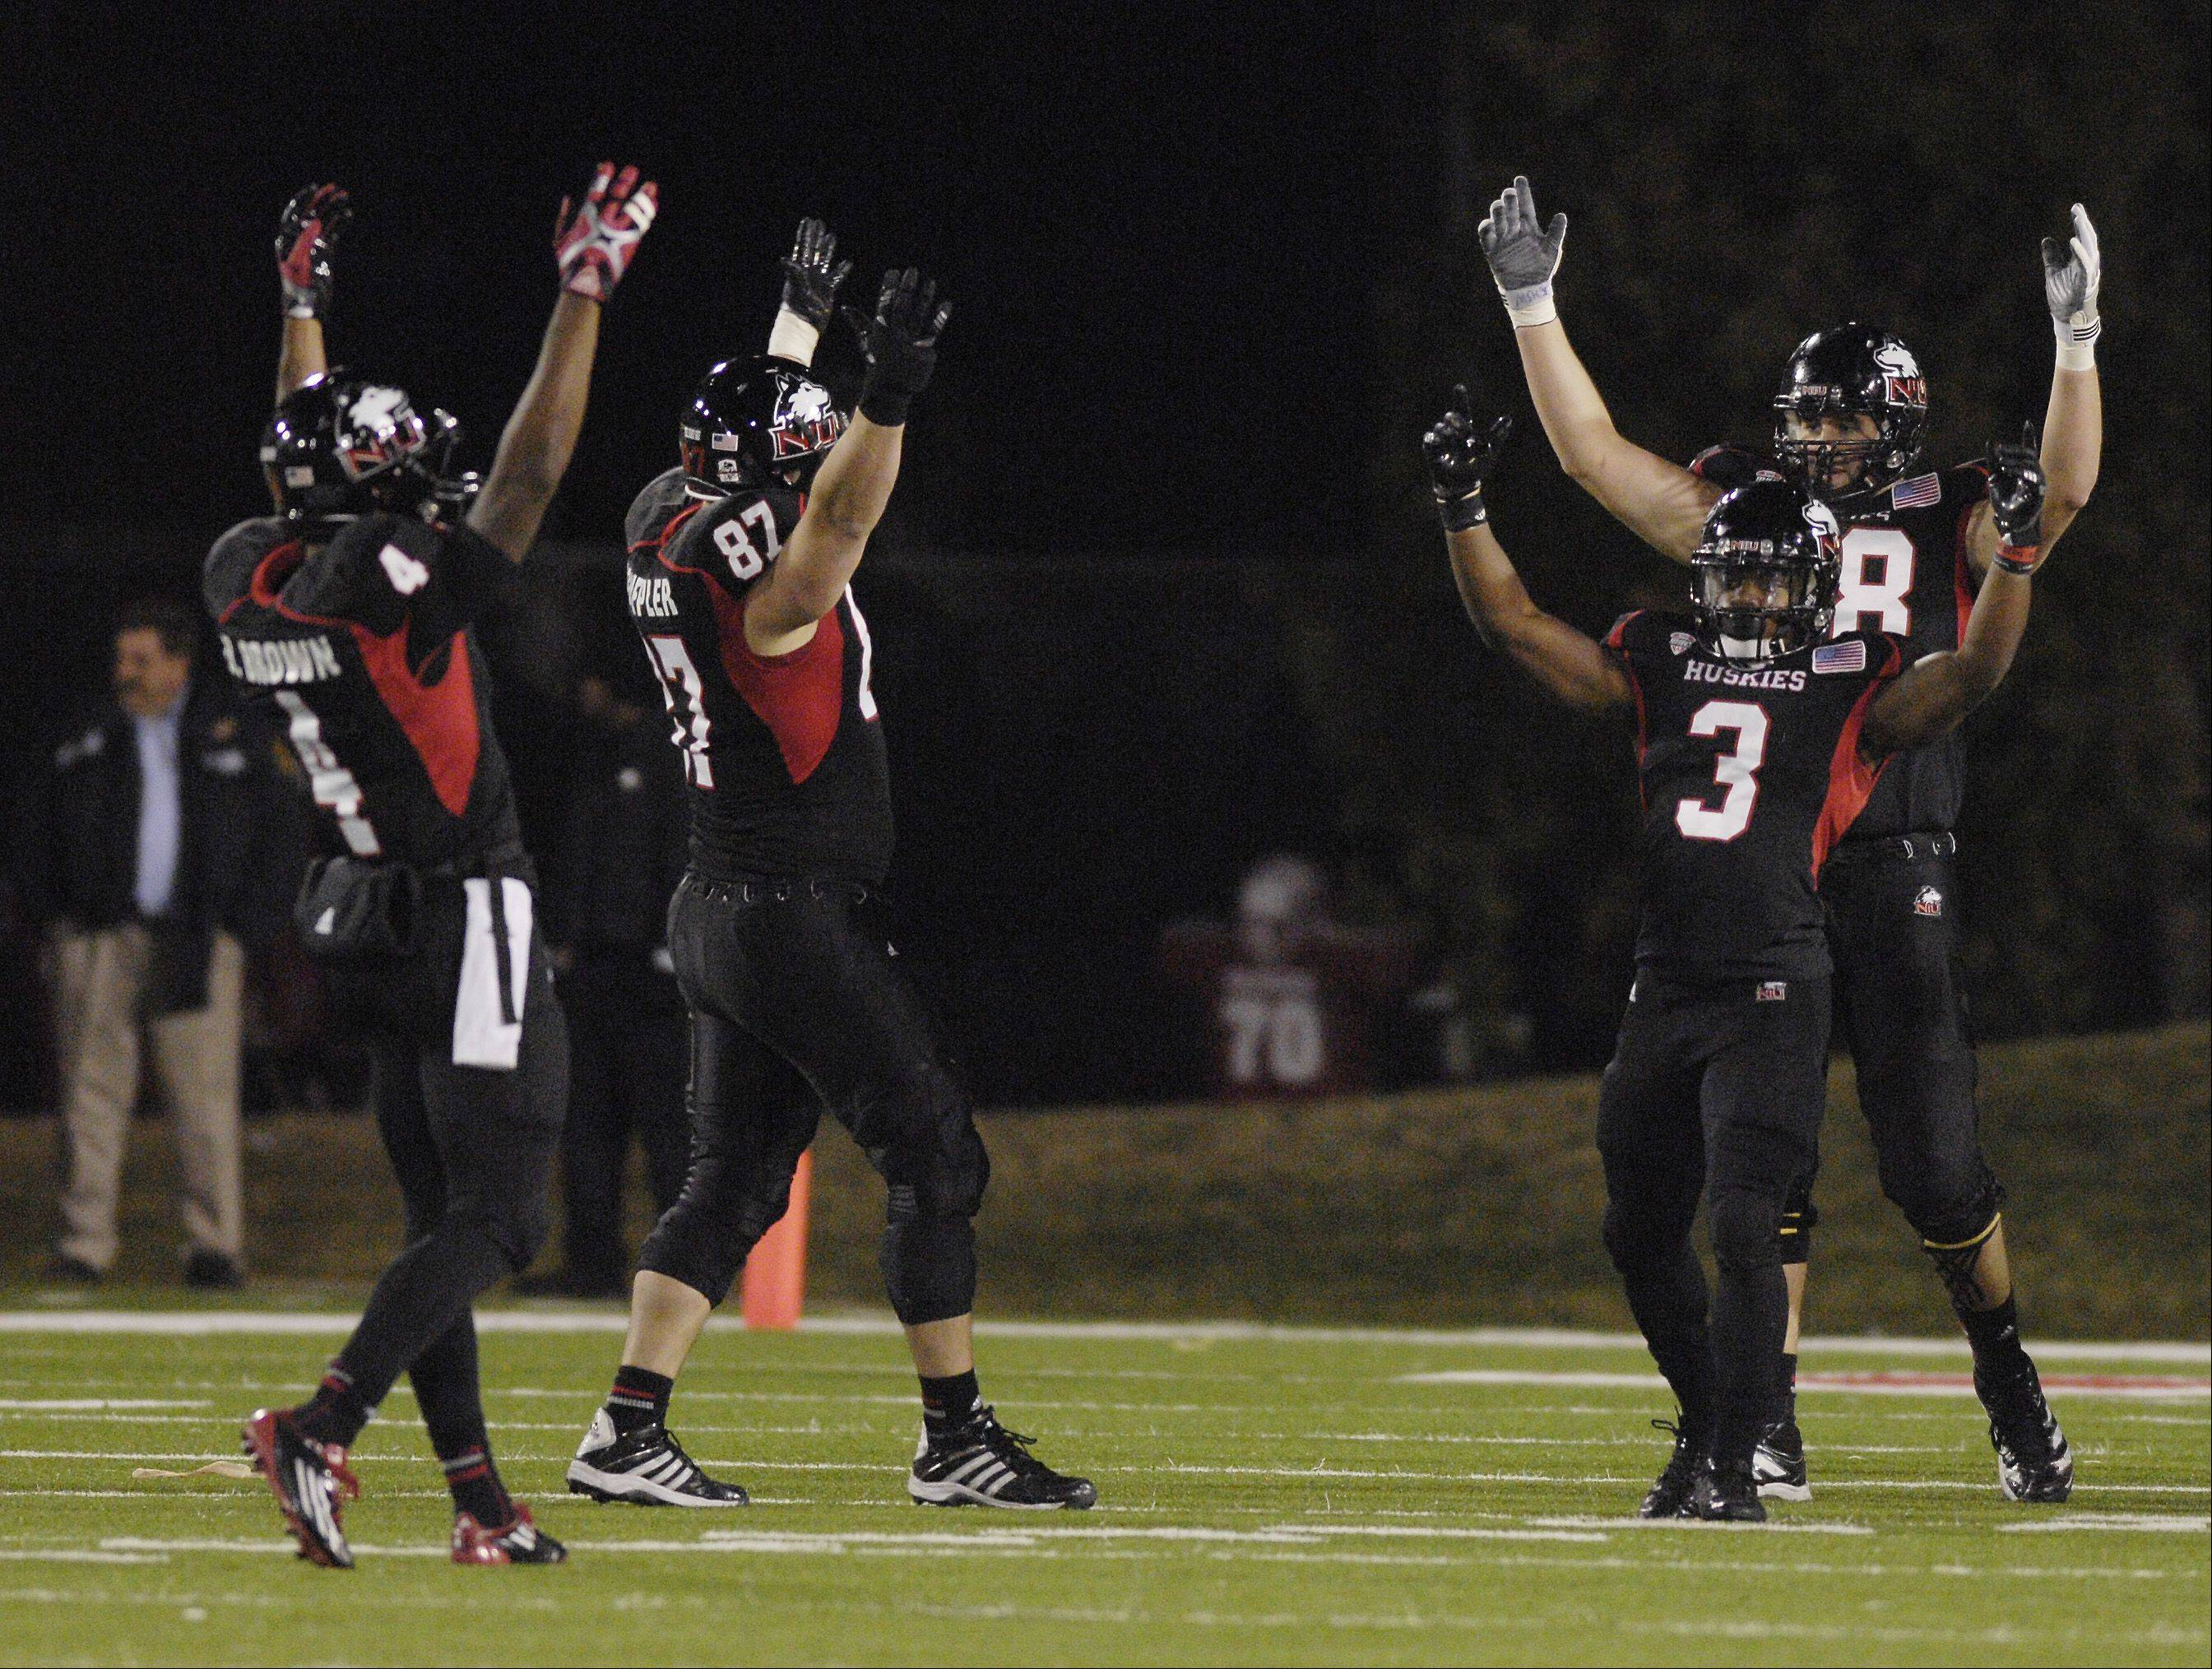 Northern Illinois University had a lot to celebrate after last week's win over the Toledo Rockets in DeKalb clinched a berth in the MAC championship game. Now they have to focus on now having a letdown against Eastern Michigan on Friday.